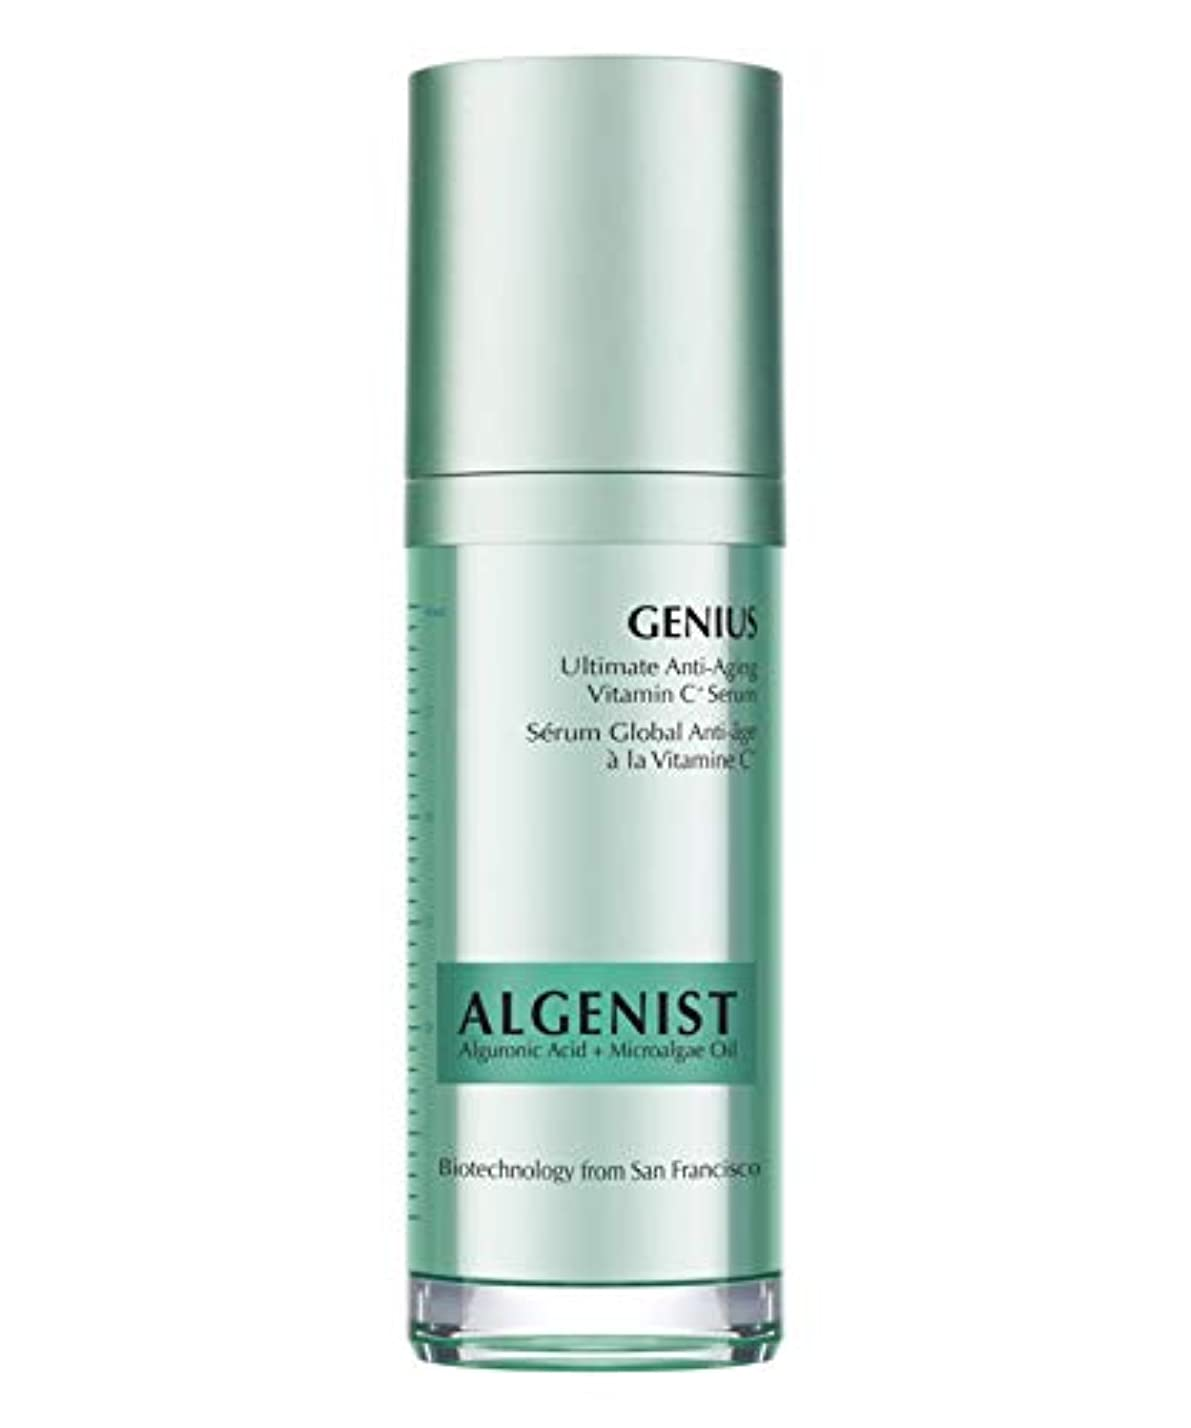 勢いレジデンス医療過誤Algenist Genius Ultimate Anti-Aging Vitamin C Serum 30ml